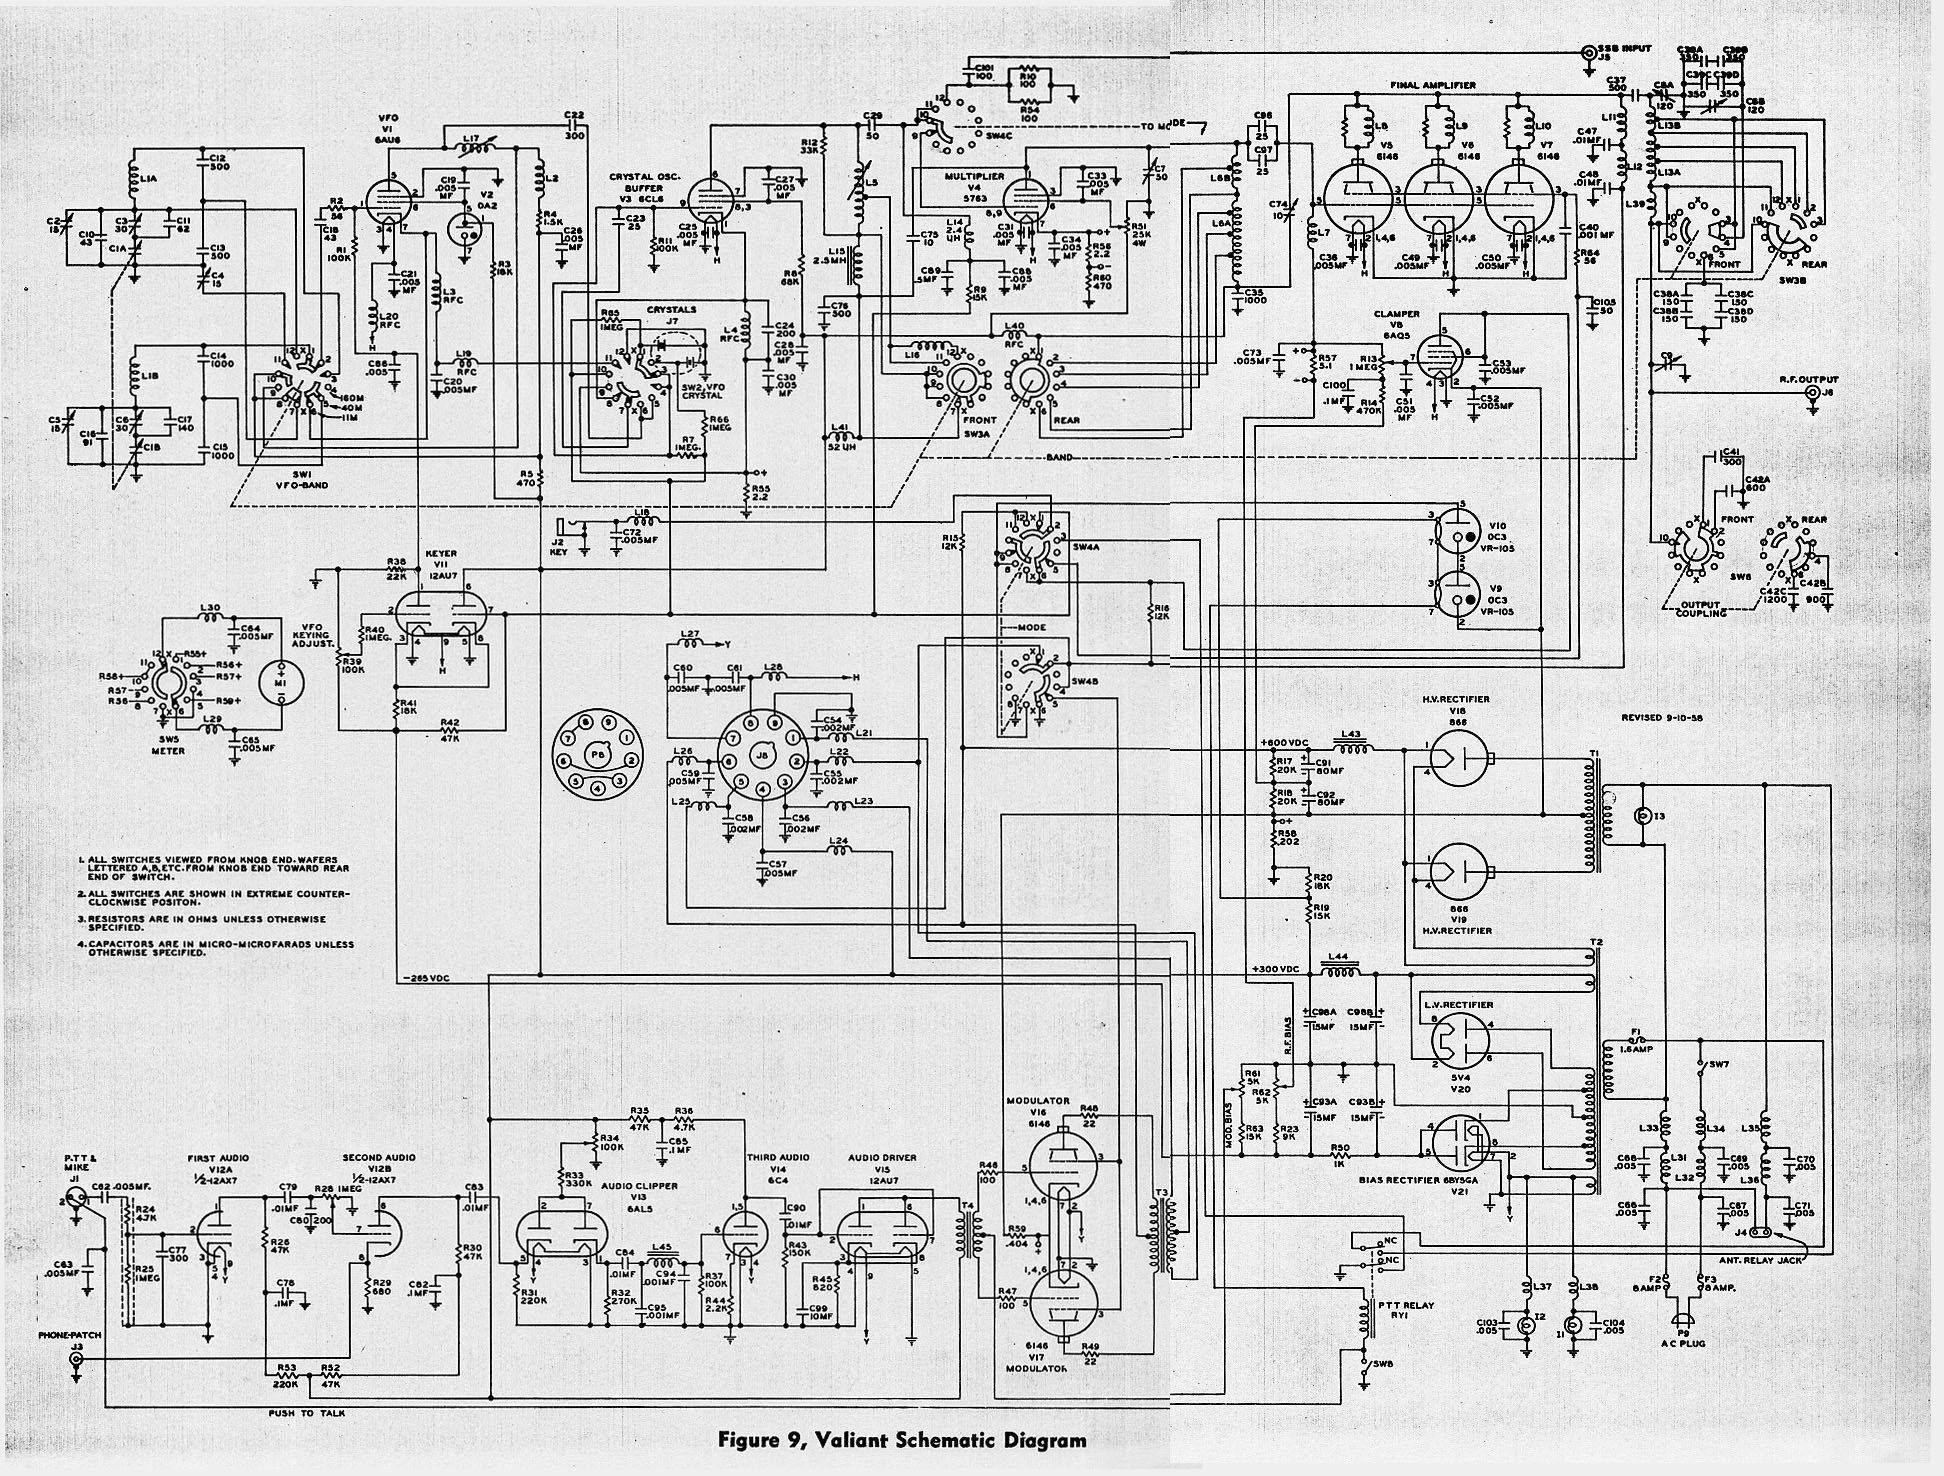 radio_Johnson_Viking_Valiant_schematic viking wiring diagrams light wiring diagram \u2022 free wiring diagrams  at soozxer.org